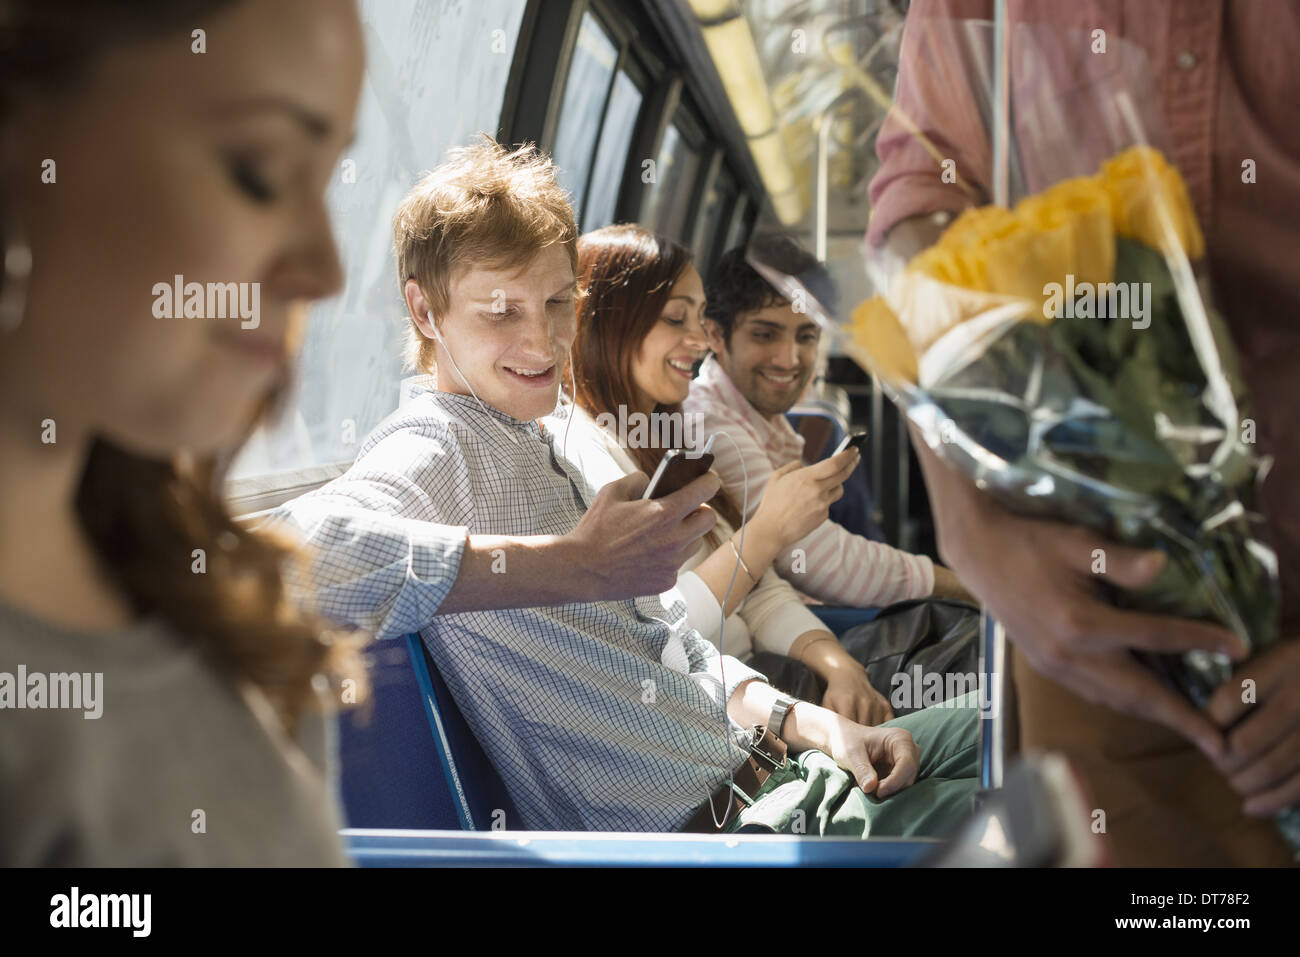 Urban Lifestyle. A group of people, men and women on a city bus, in New York city. Two people checking their smart phones. - Stock Image